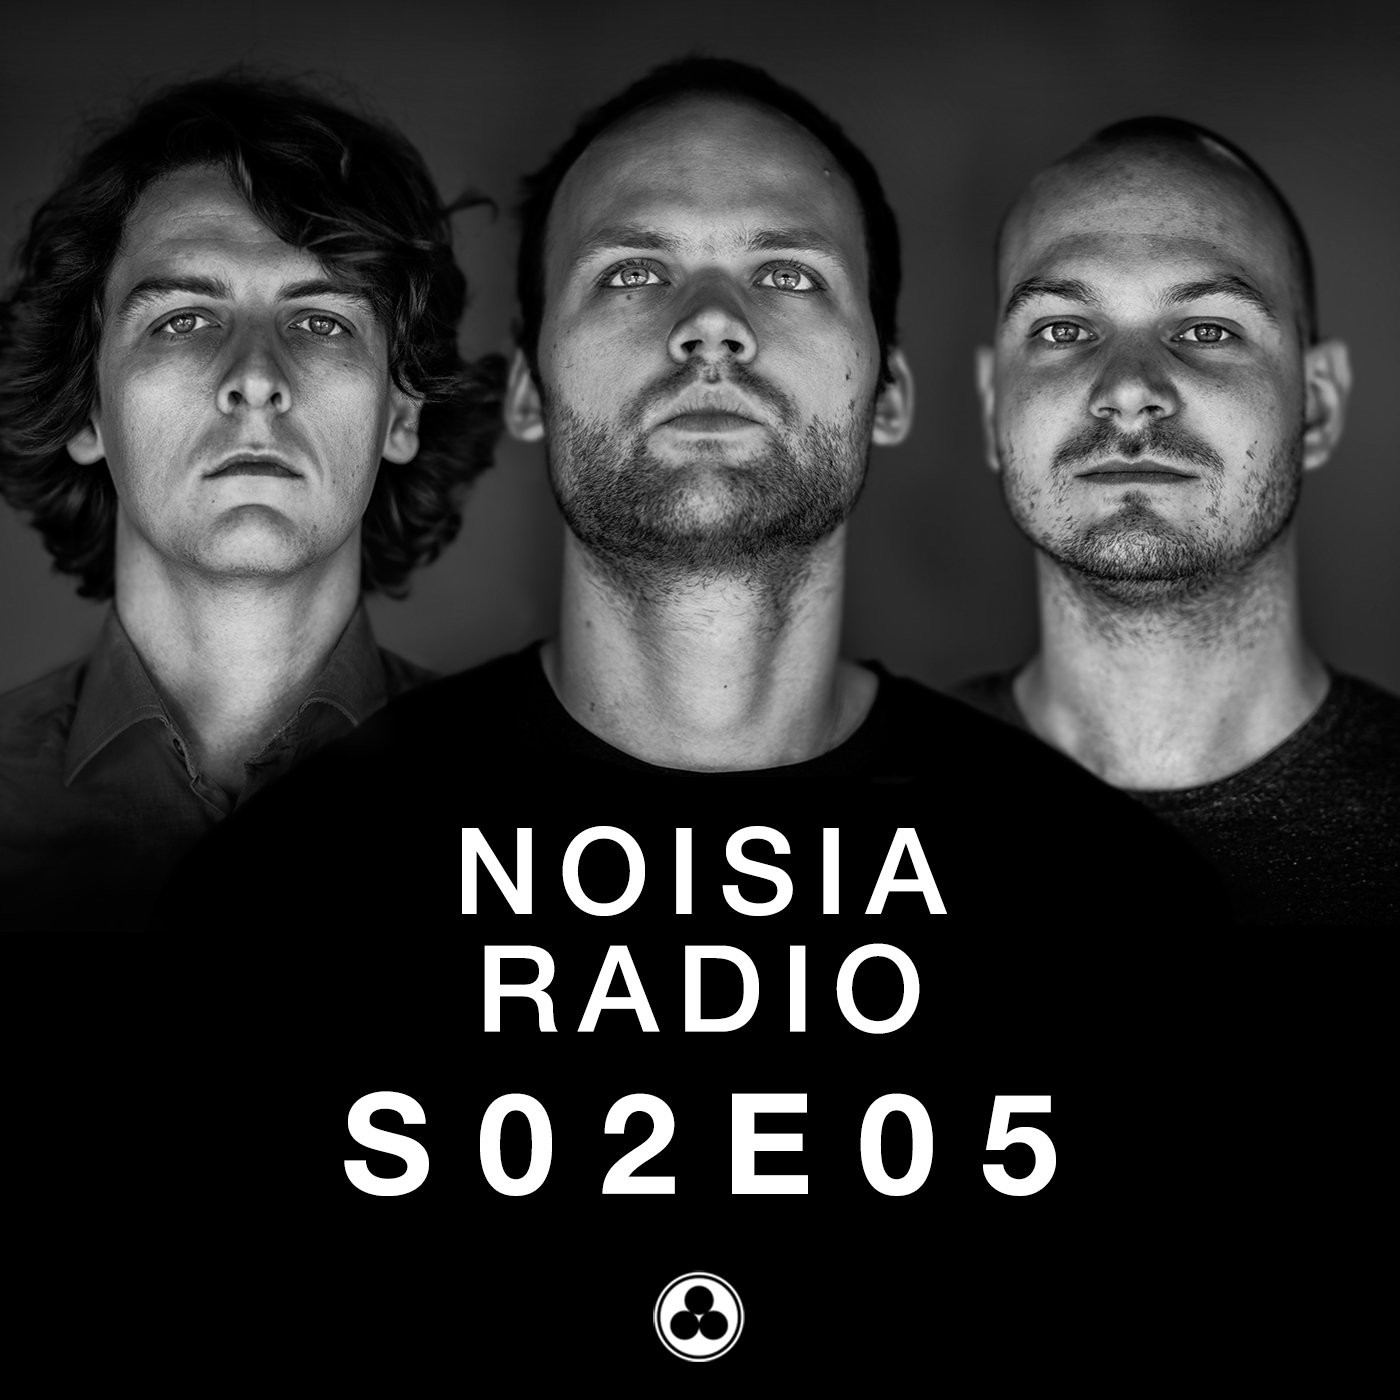 Noisia Radio S02E05